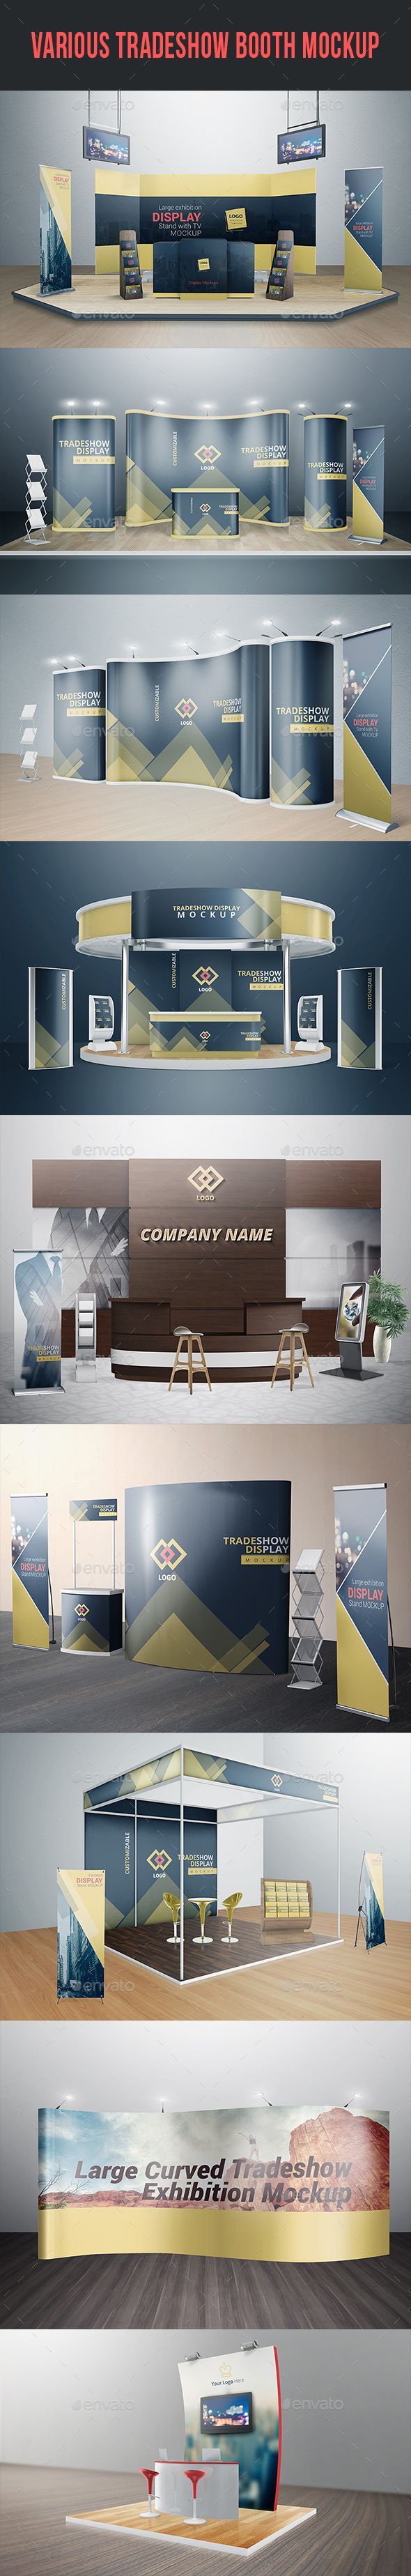 Exhibition Booth Mockup Free Download : Pin by best graphic design on mockup trade show booth design